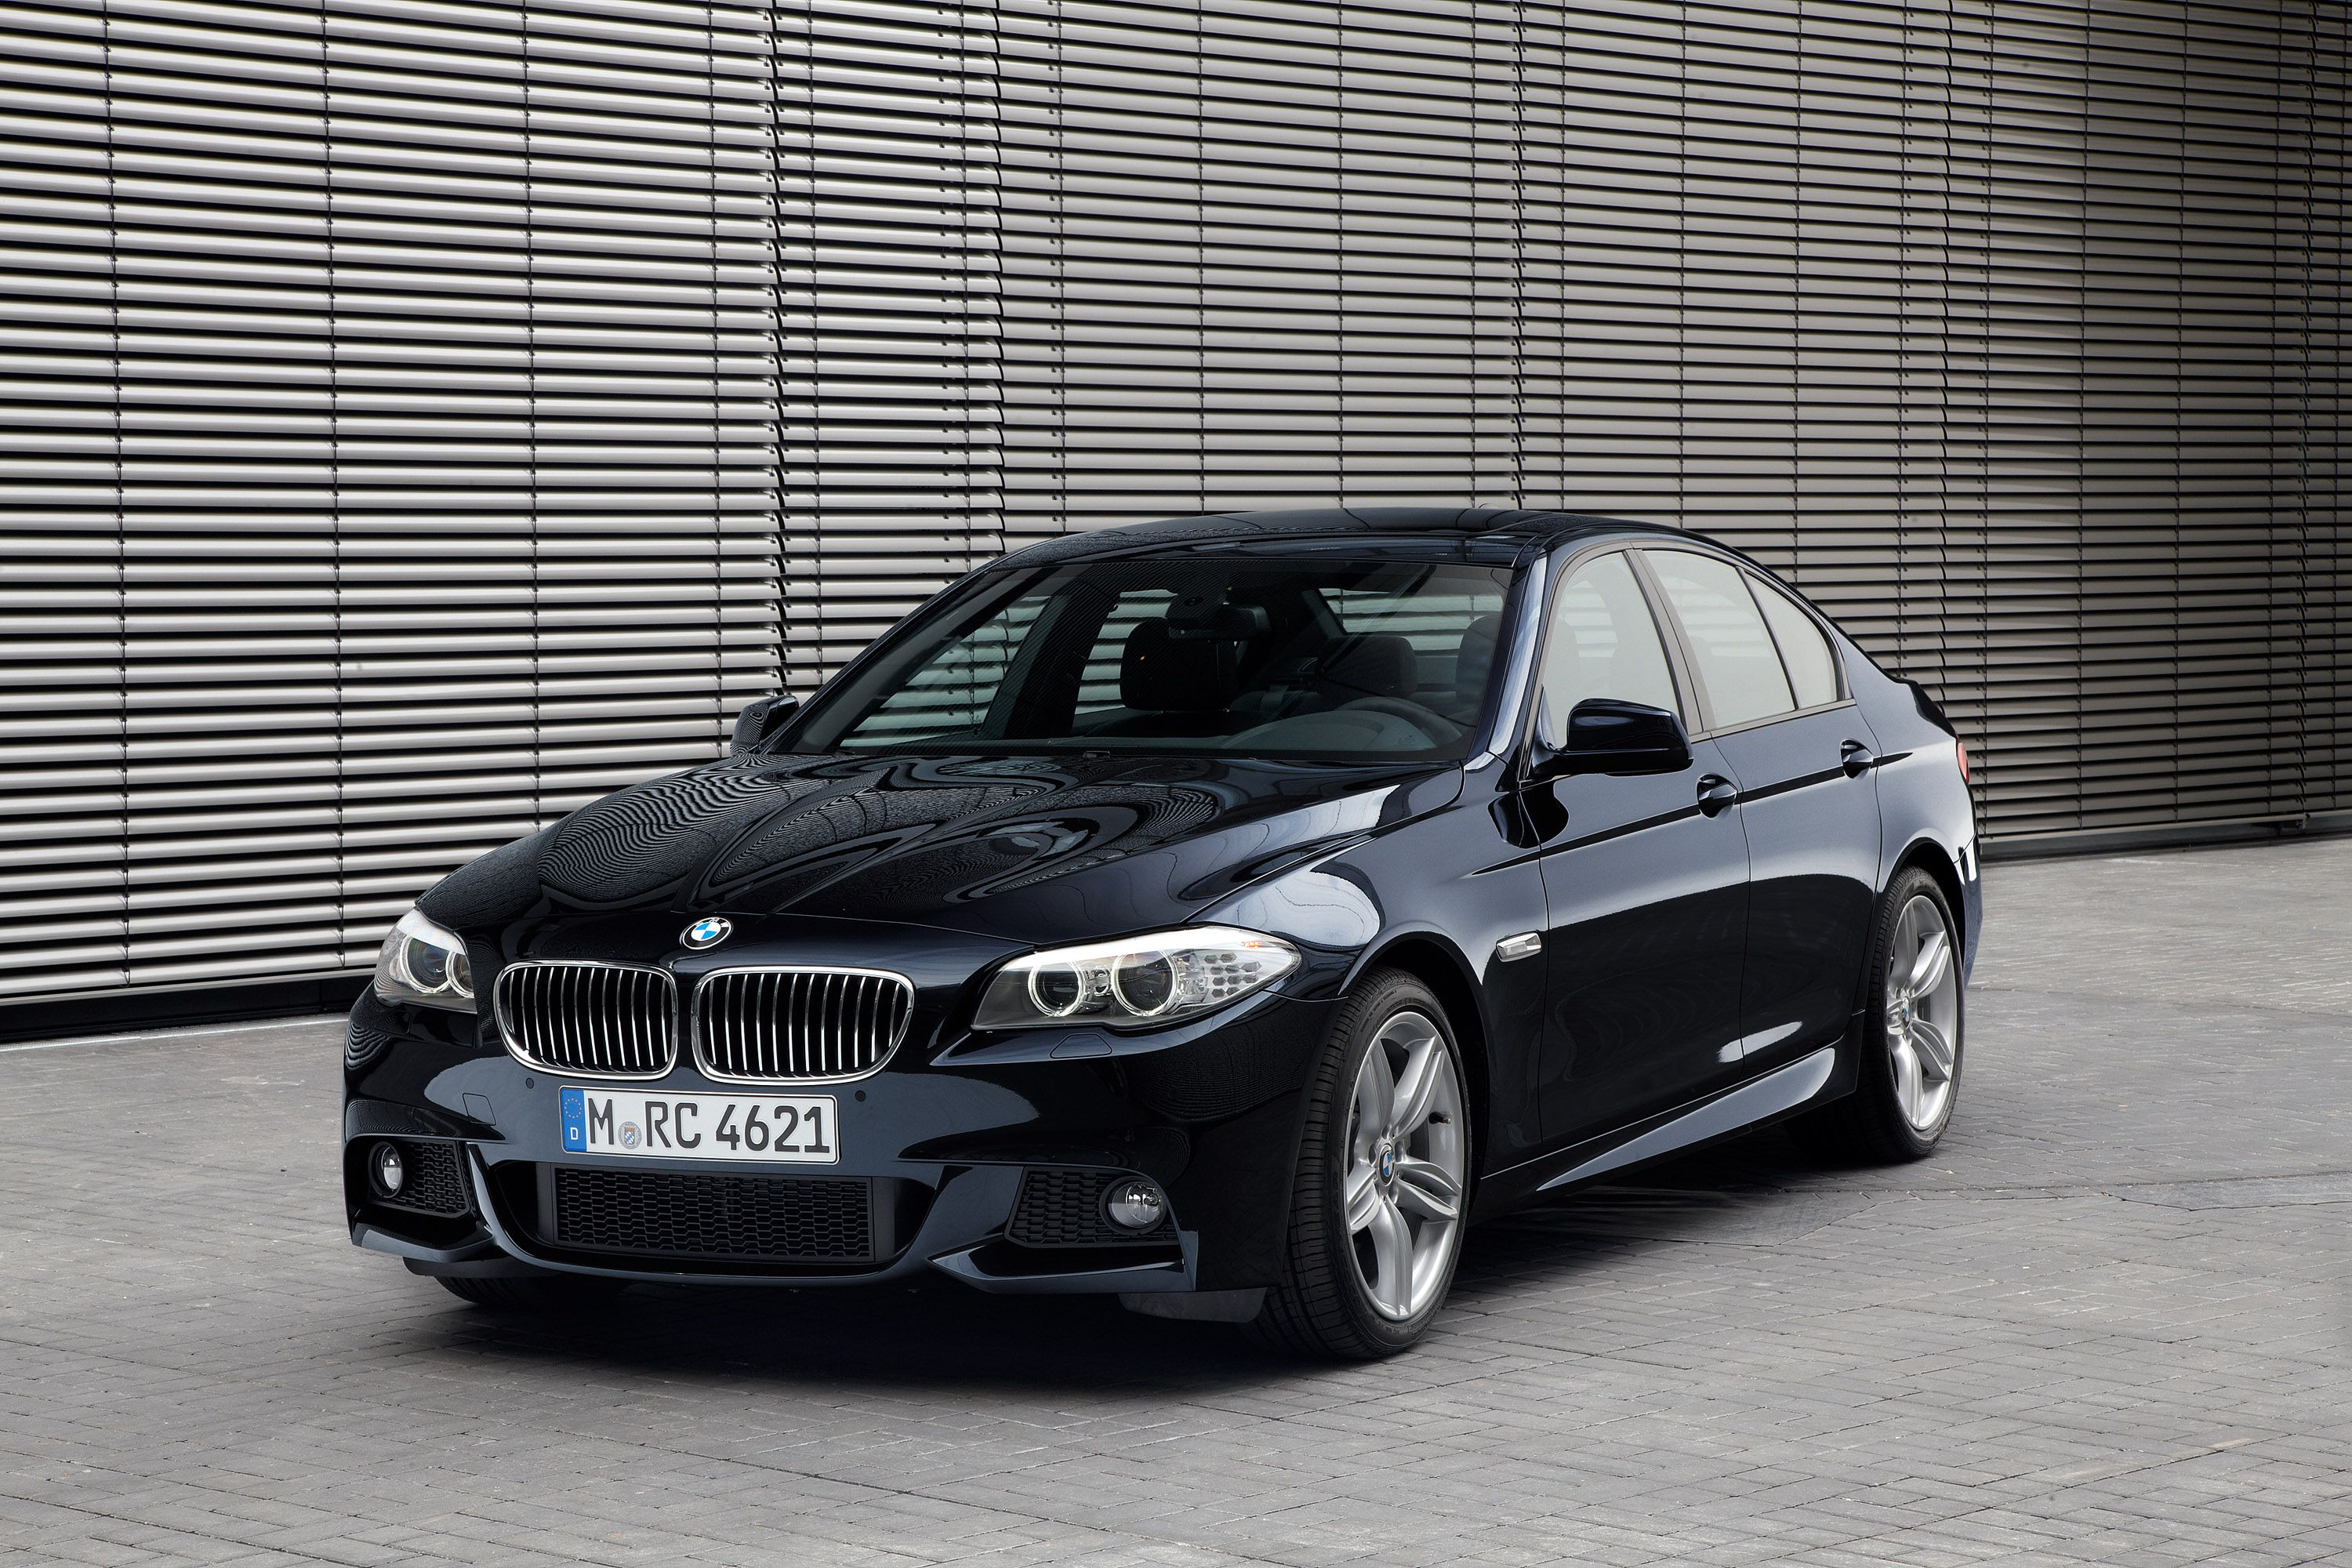 Bmw 5 Series Premium But Not Luxurious As Suggested By Adil